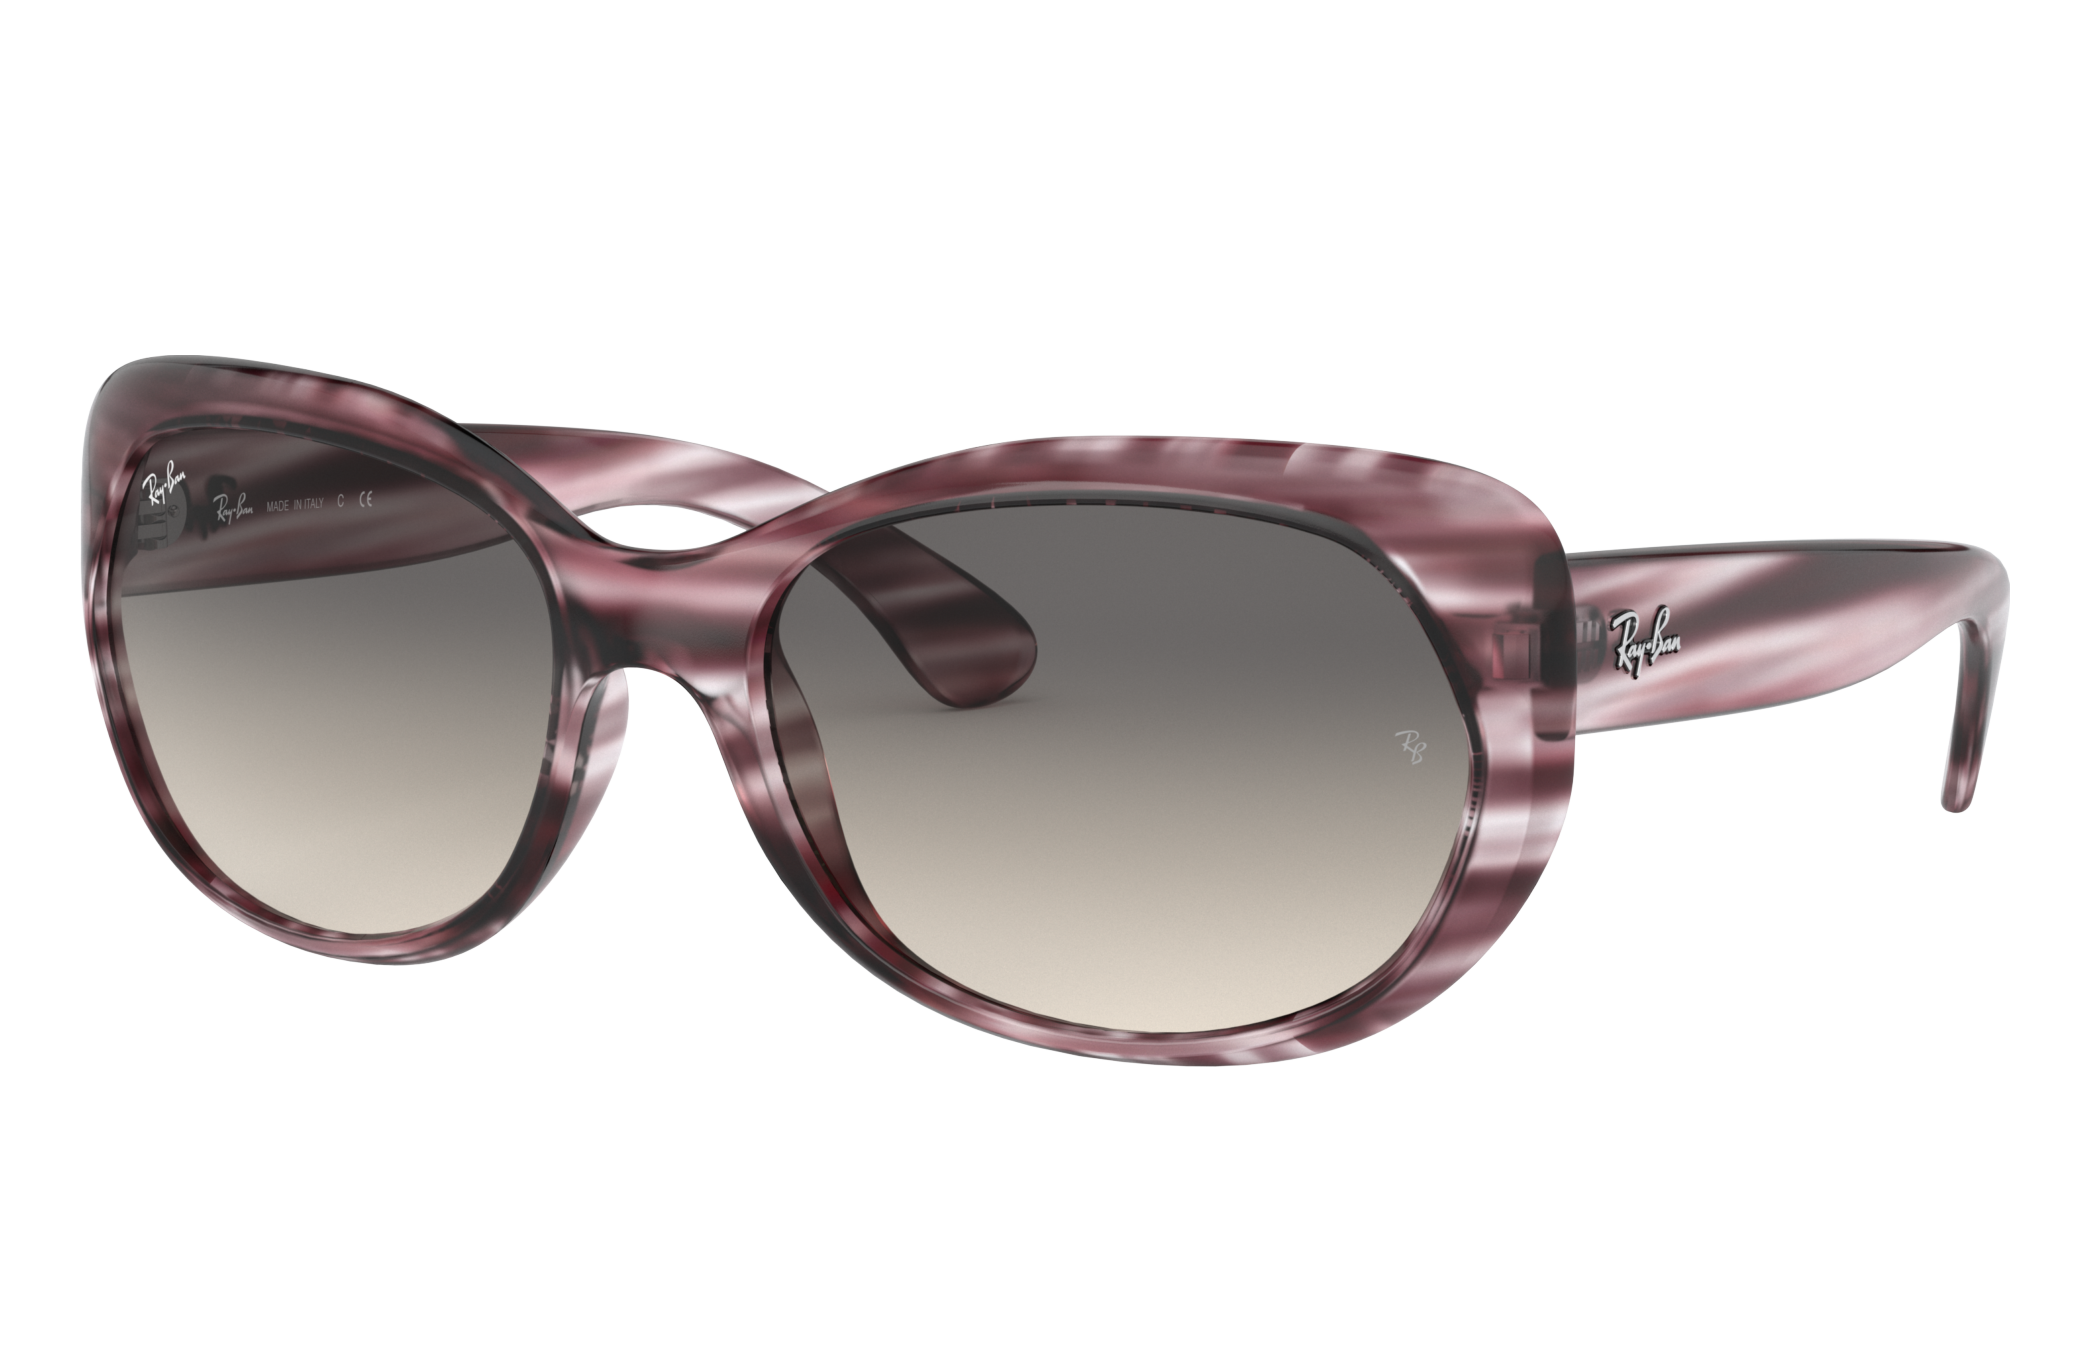 Ray-Ban Rb4325 Striped Bordeaux, Grey Lenses - RB4325